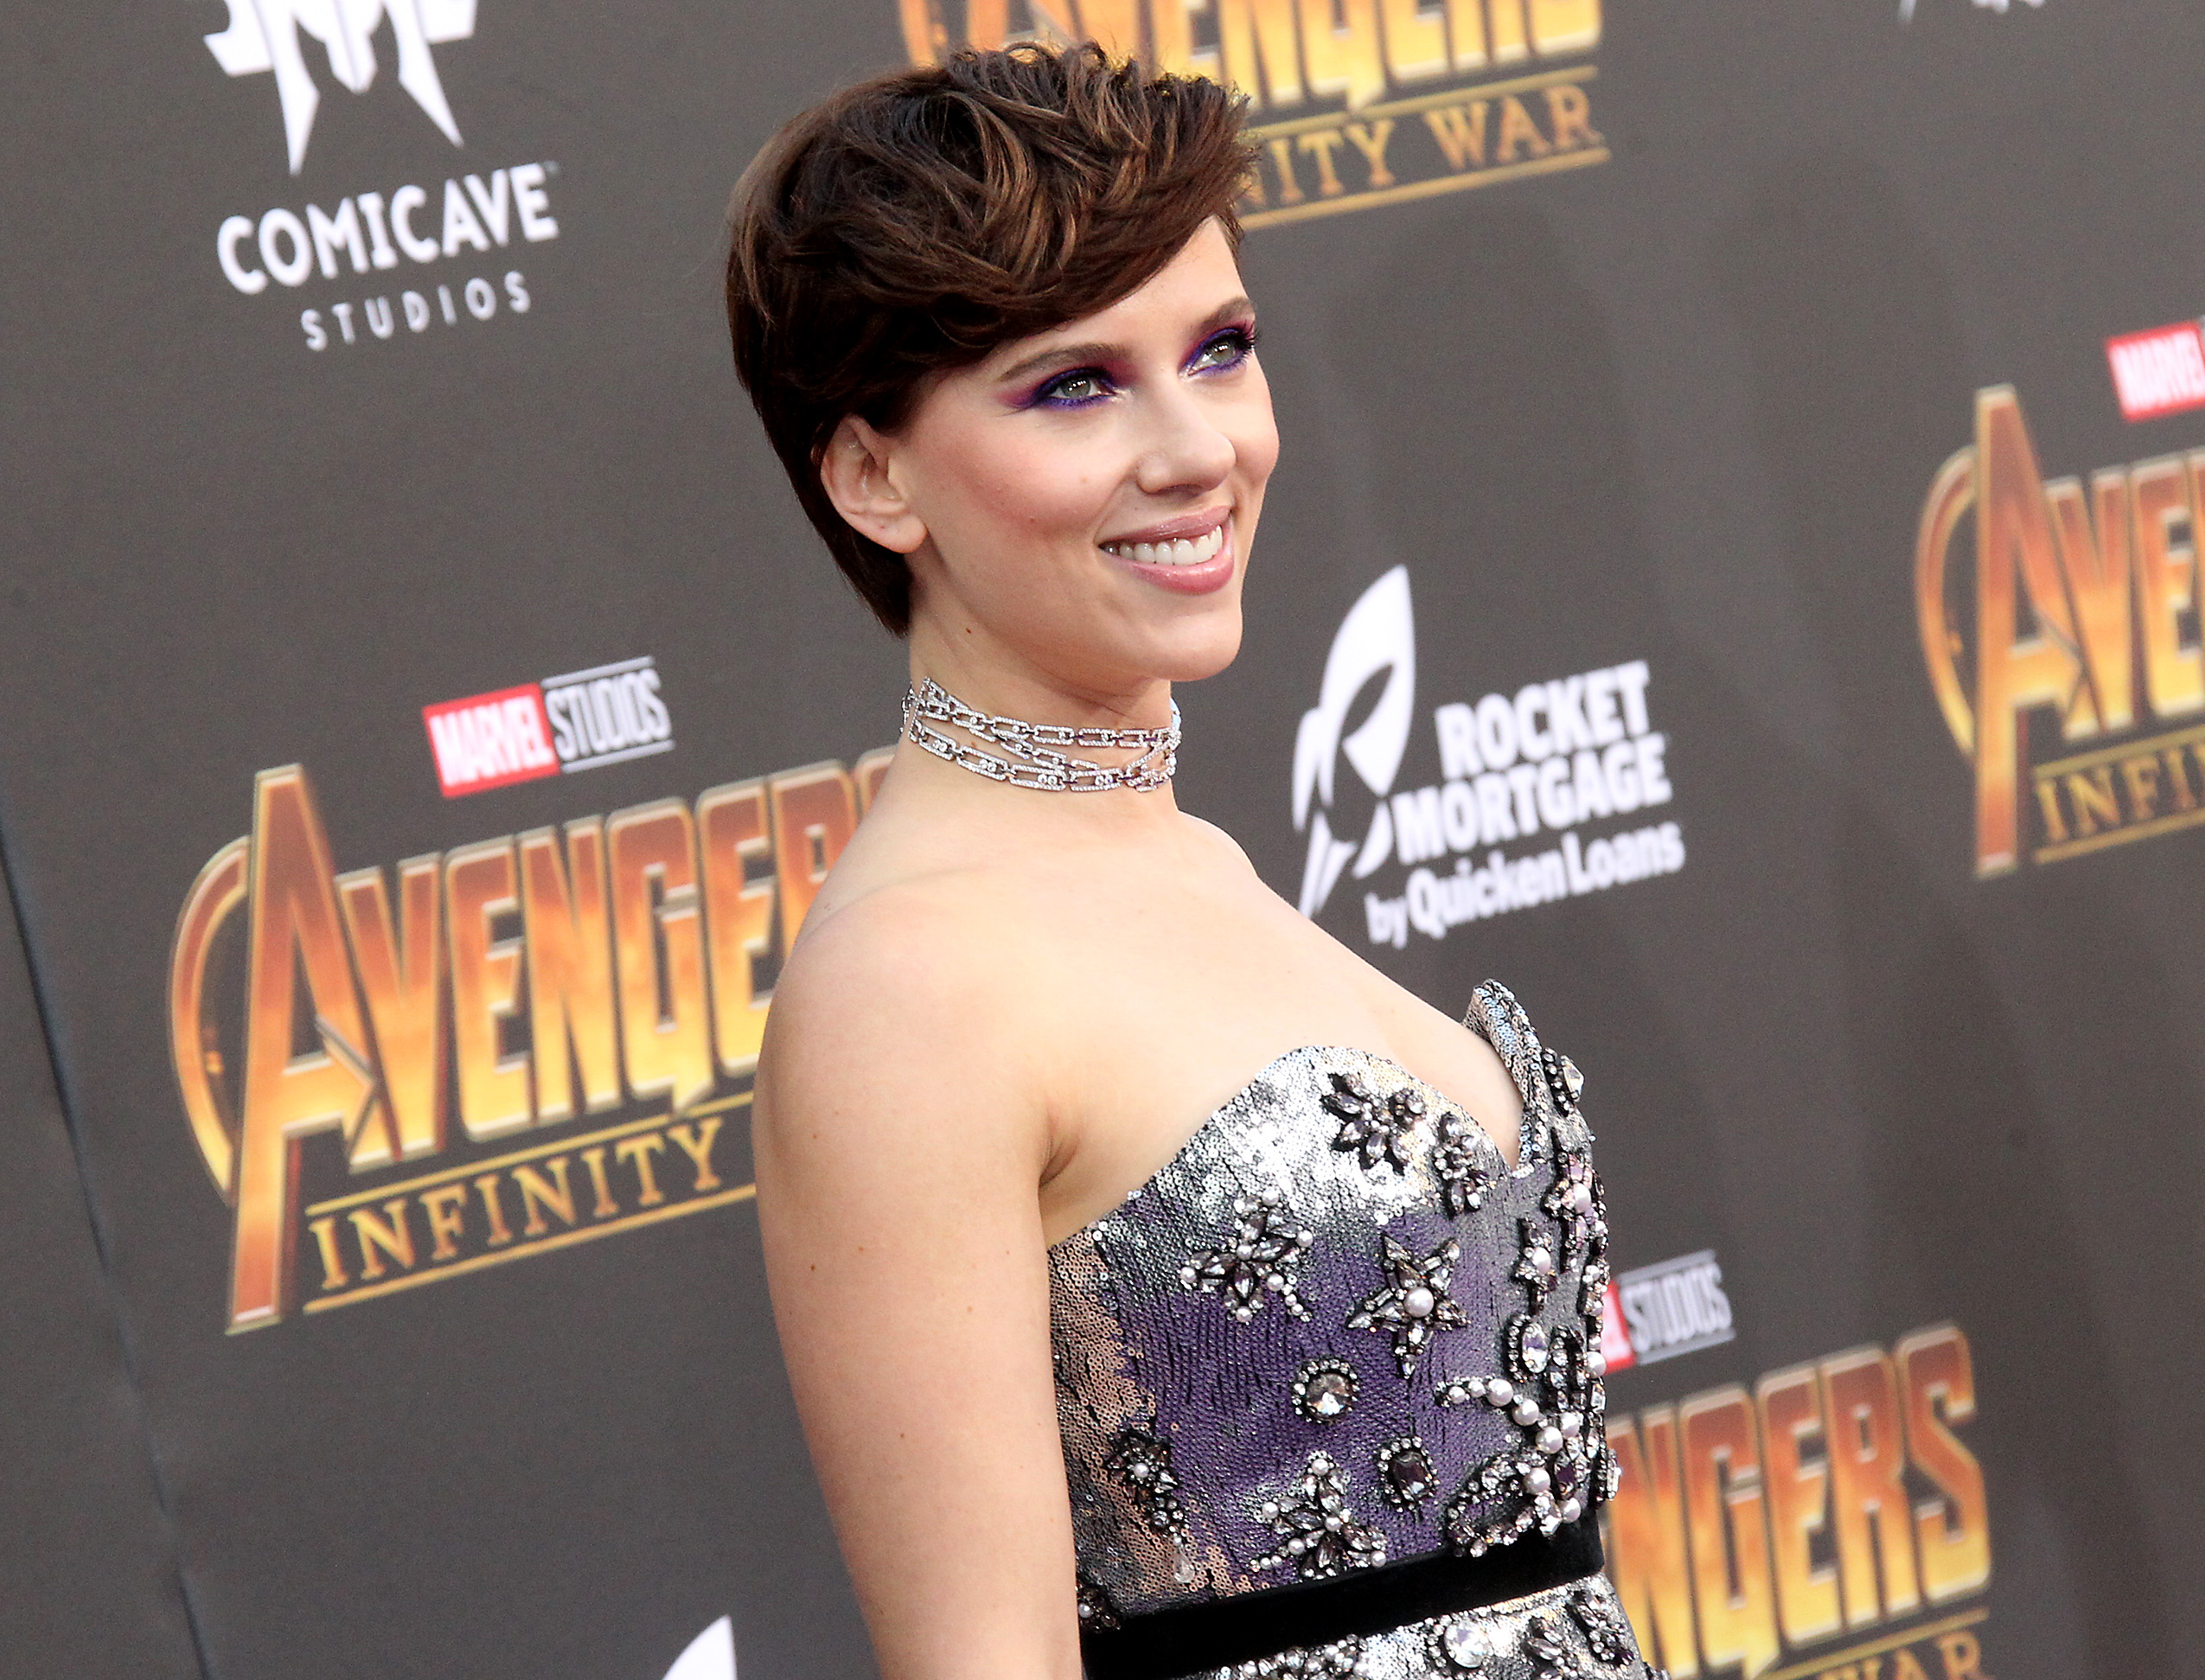 Scarlett Johansson Twitter: Twitter Is Slamming Scarlett Johansson Over Her Most